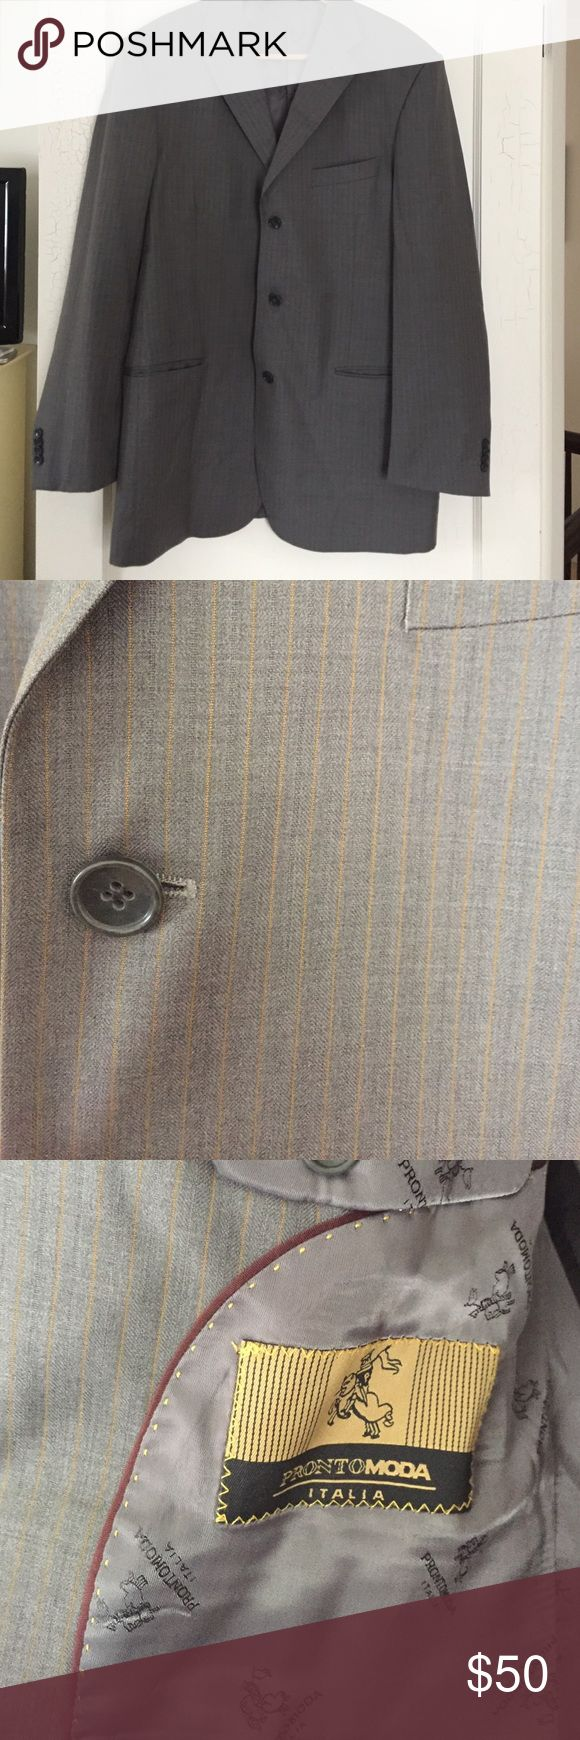 MENS | Pronto Moda Grey and Brown Pinstripe Suit Merino Wool, this gorgeous pinstripe suit is in good condition. Minor marks, easily dry cleaned out. Blazer is a 44L and pants are a 36/34. Pronto Moda Suits & Blazers Suits